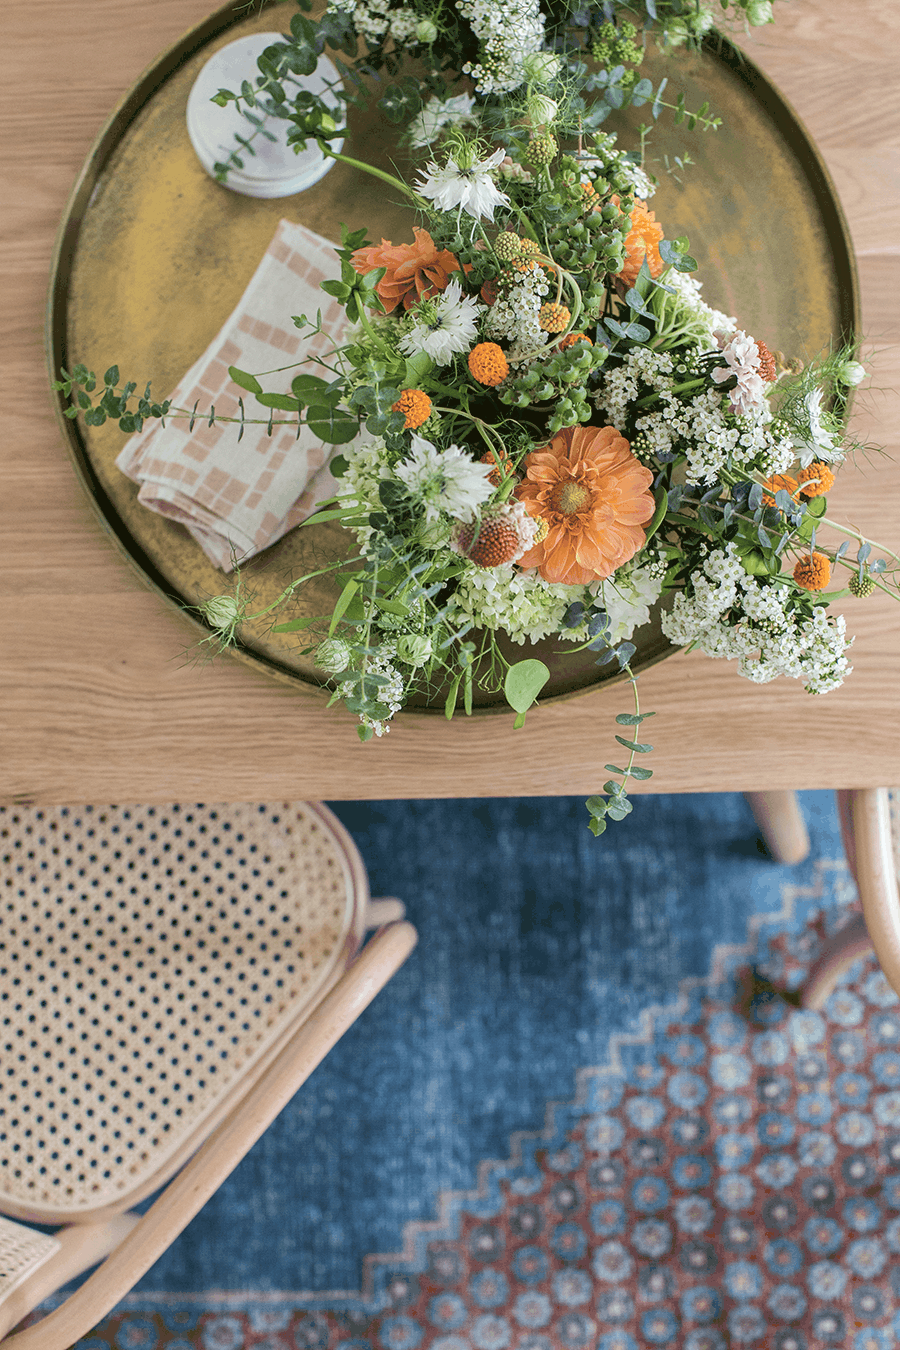 Flowers on a table for Hygge